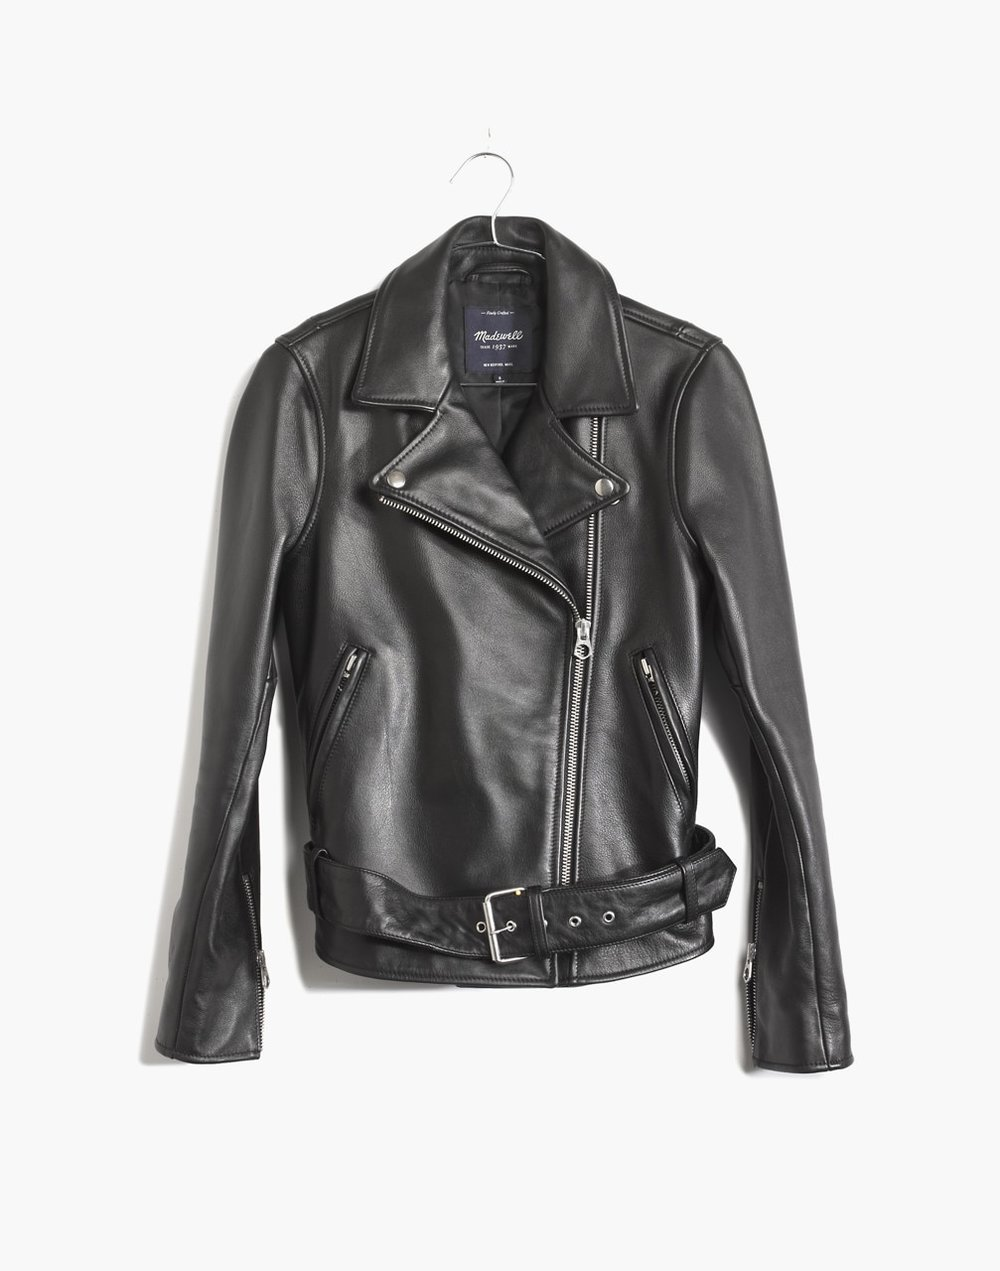 Madewell Motorcycle Jacket, $498